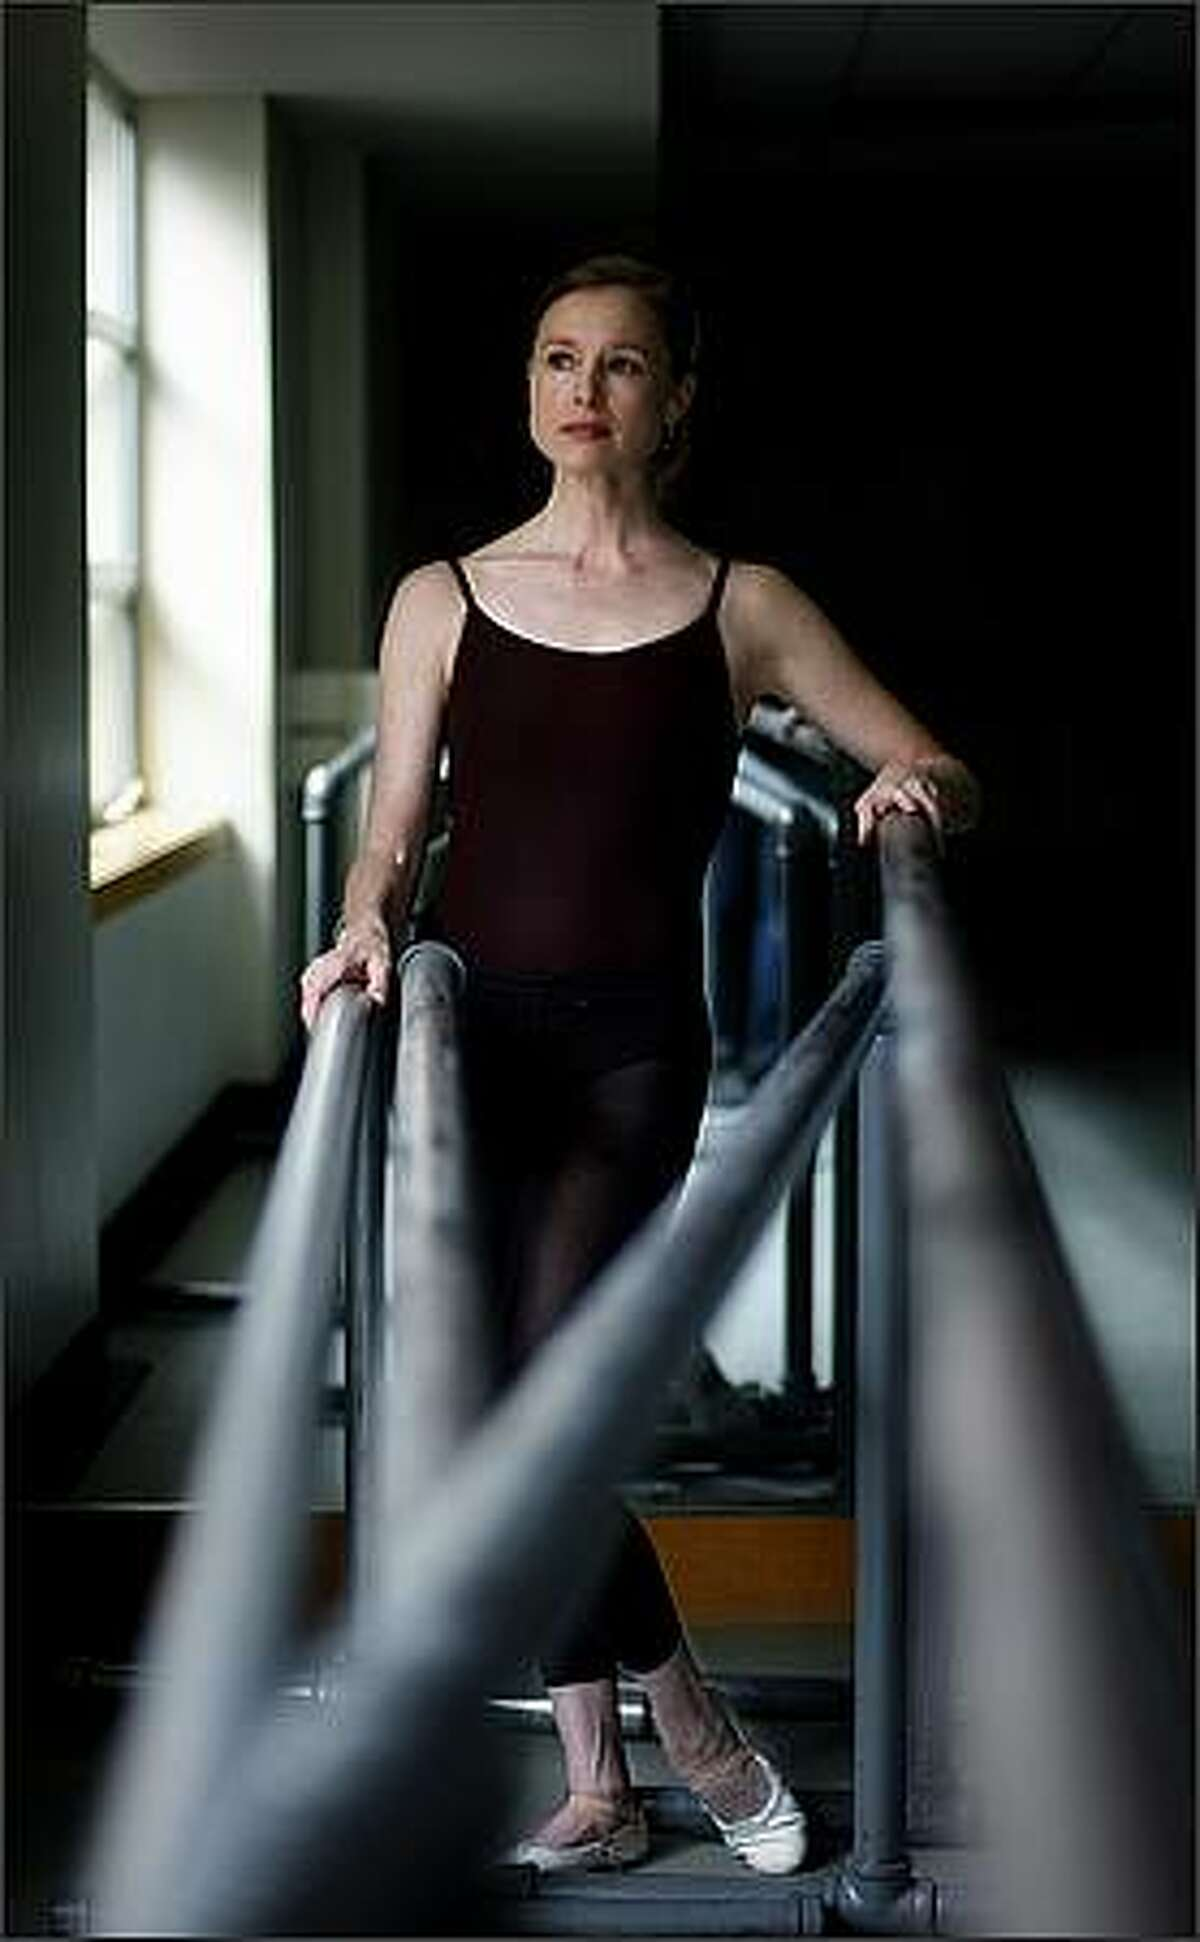 Louise Nadeau, a principal dancer with the Pacific Northwest Ballet, stands for a portrait in an empty studio at the Phelps Center in Seattle Tuesday, Jan. 13, 2009.